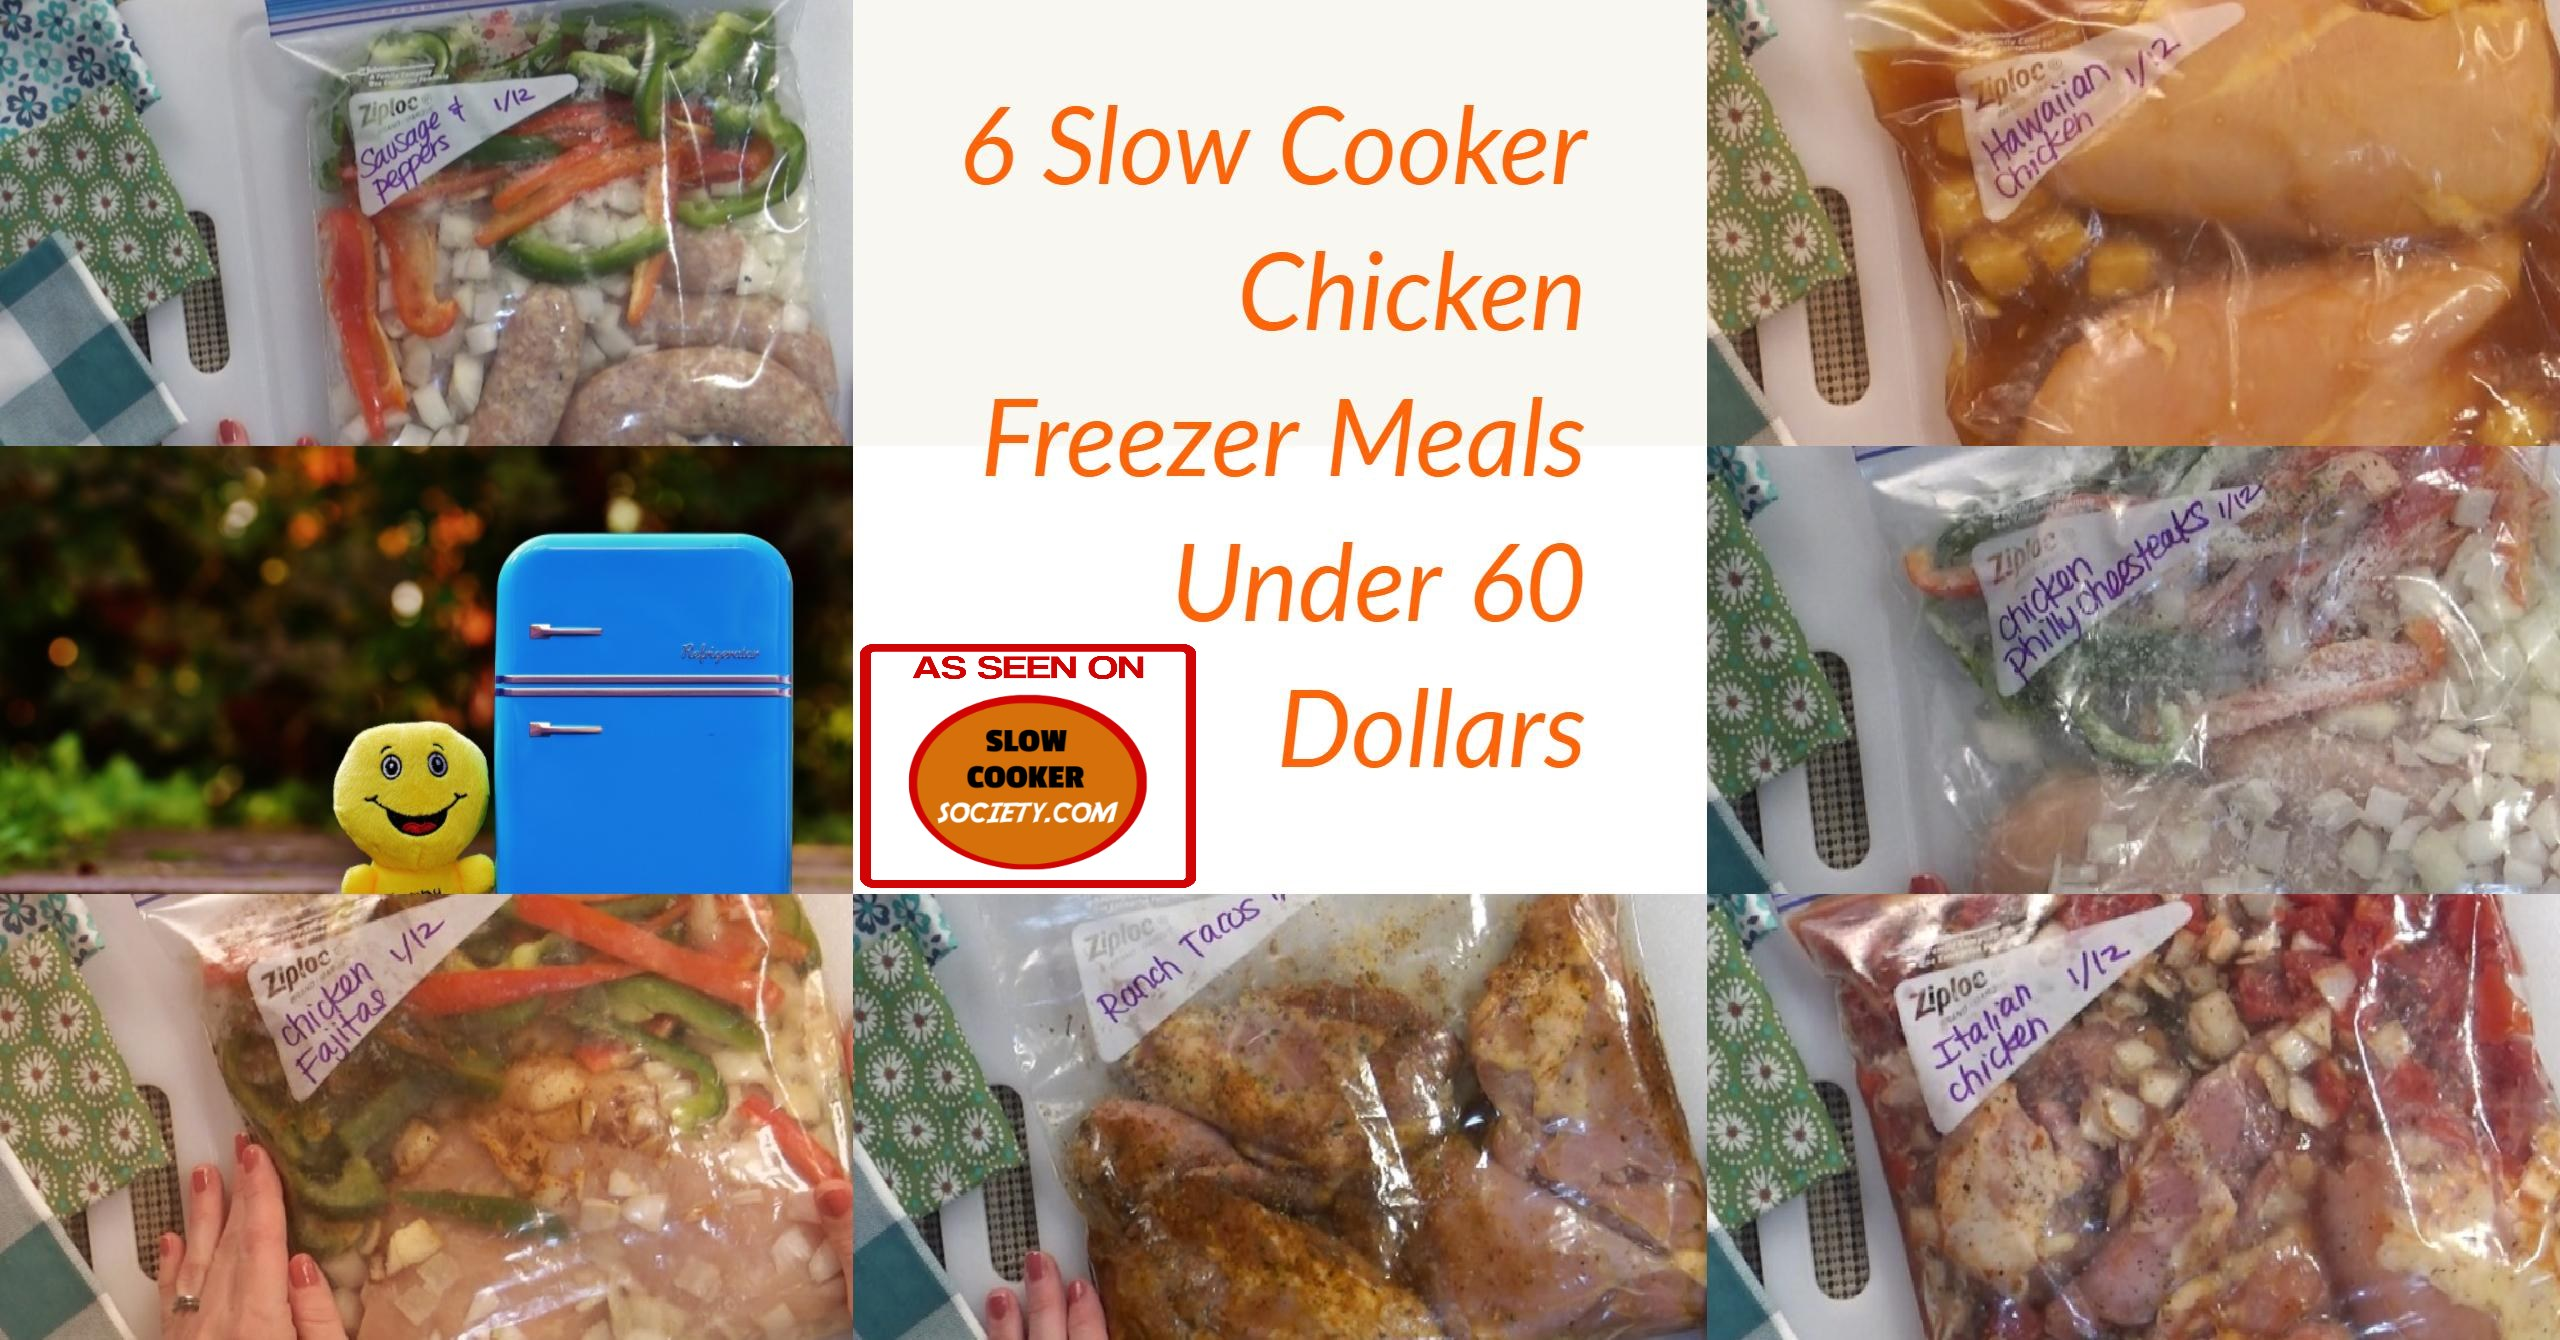 6 Easy & Cheap Crock Pot Freezer Meals Recipes Ready To Cook. Slow cookers are made for people who don't have time to cook, simply spend few minutes preparing the ingredients and drop everything in the crock pot for few hours... If you are always busy and don't have time for this short preparation, your solution is called freezer bags... Simply prepare them in advance during spare time and let them wait in the freezer... as seen on SlowCookerSociety.com